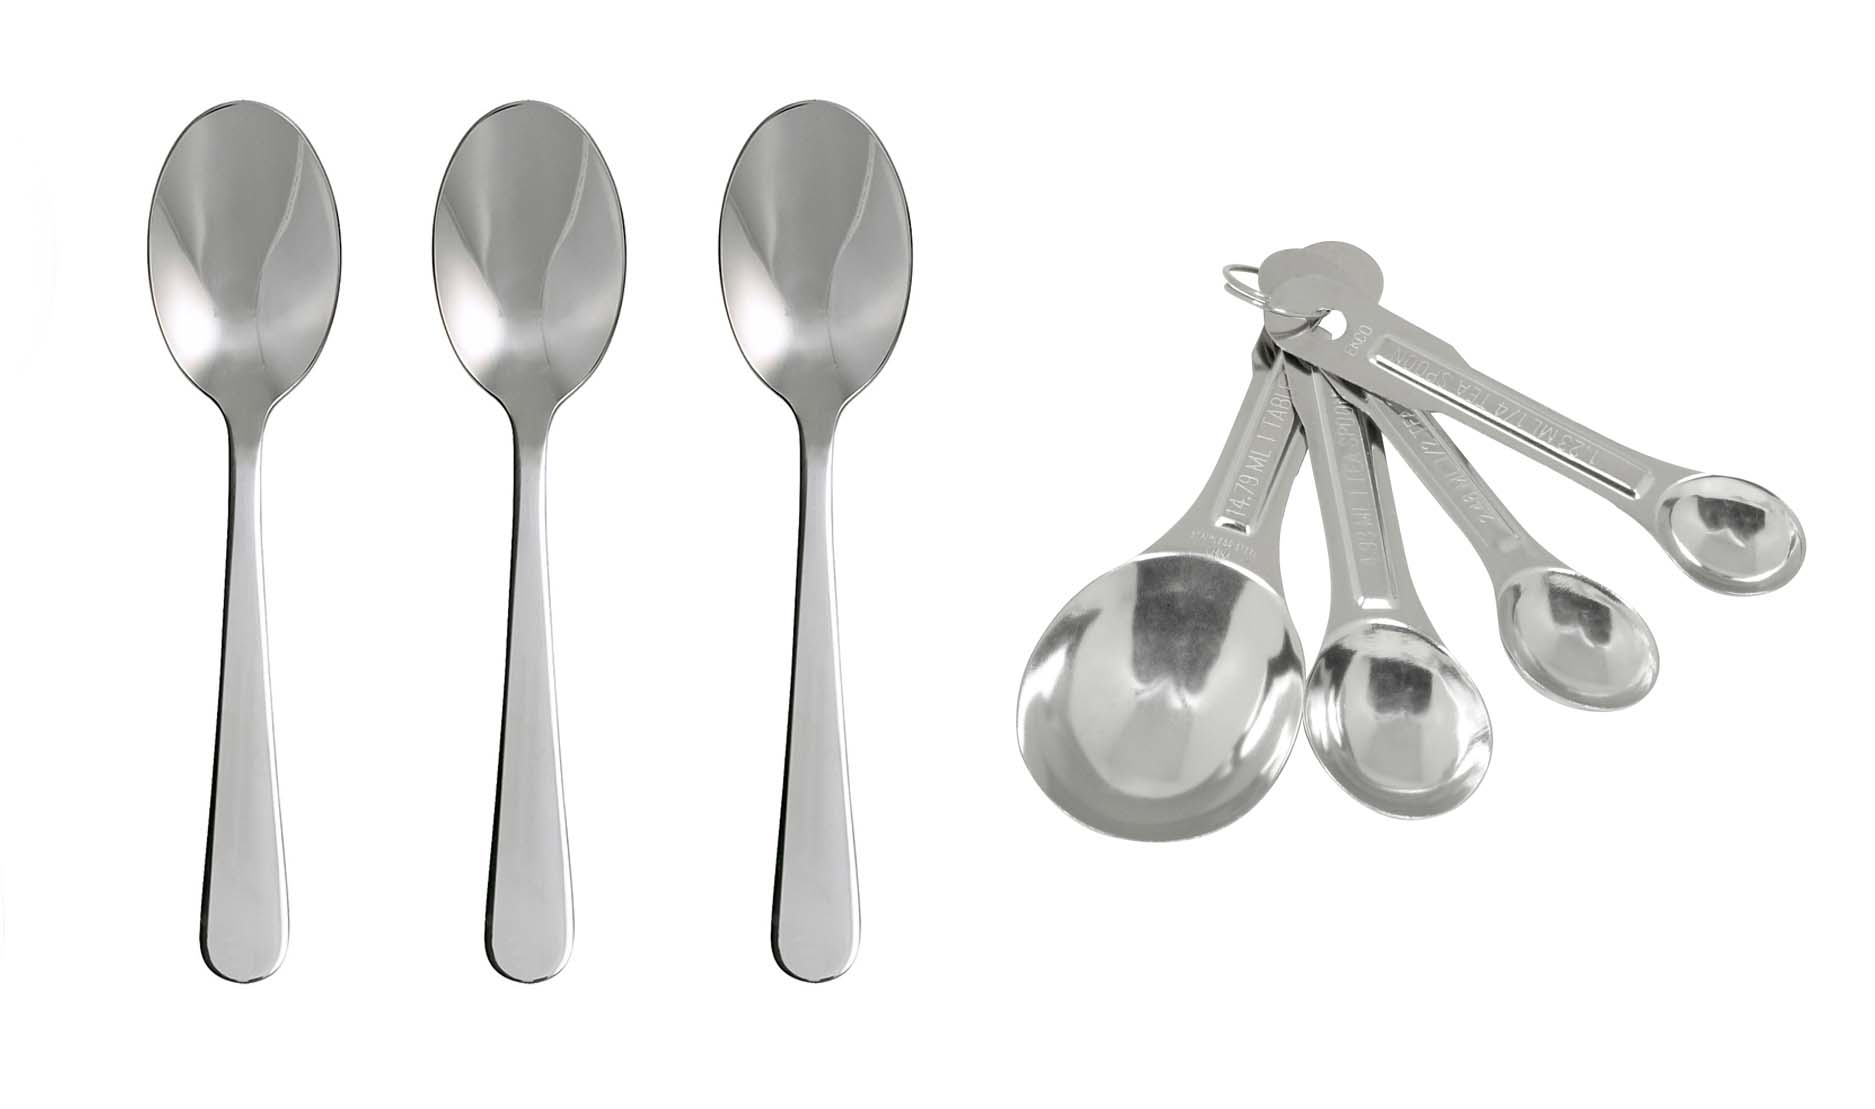 Difference Between Measuring Cups And Spoons A Tablespoon